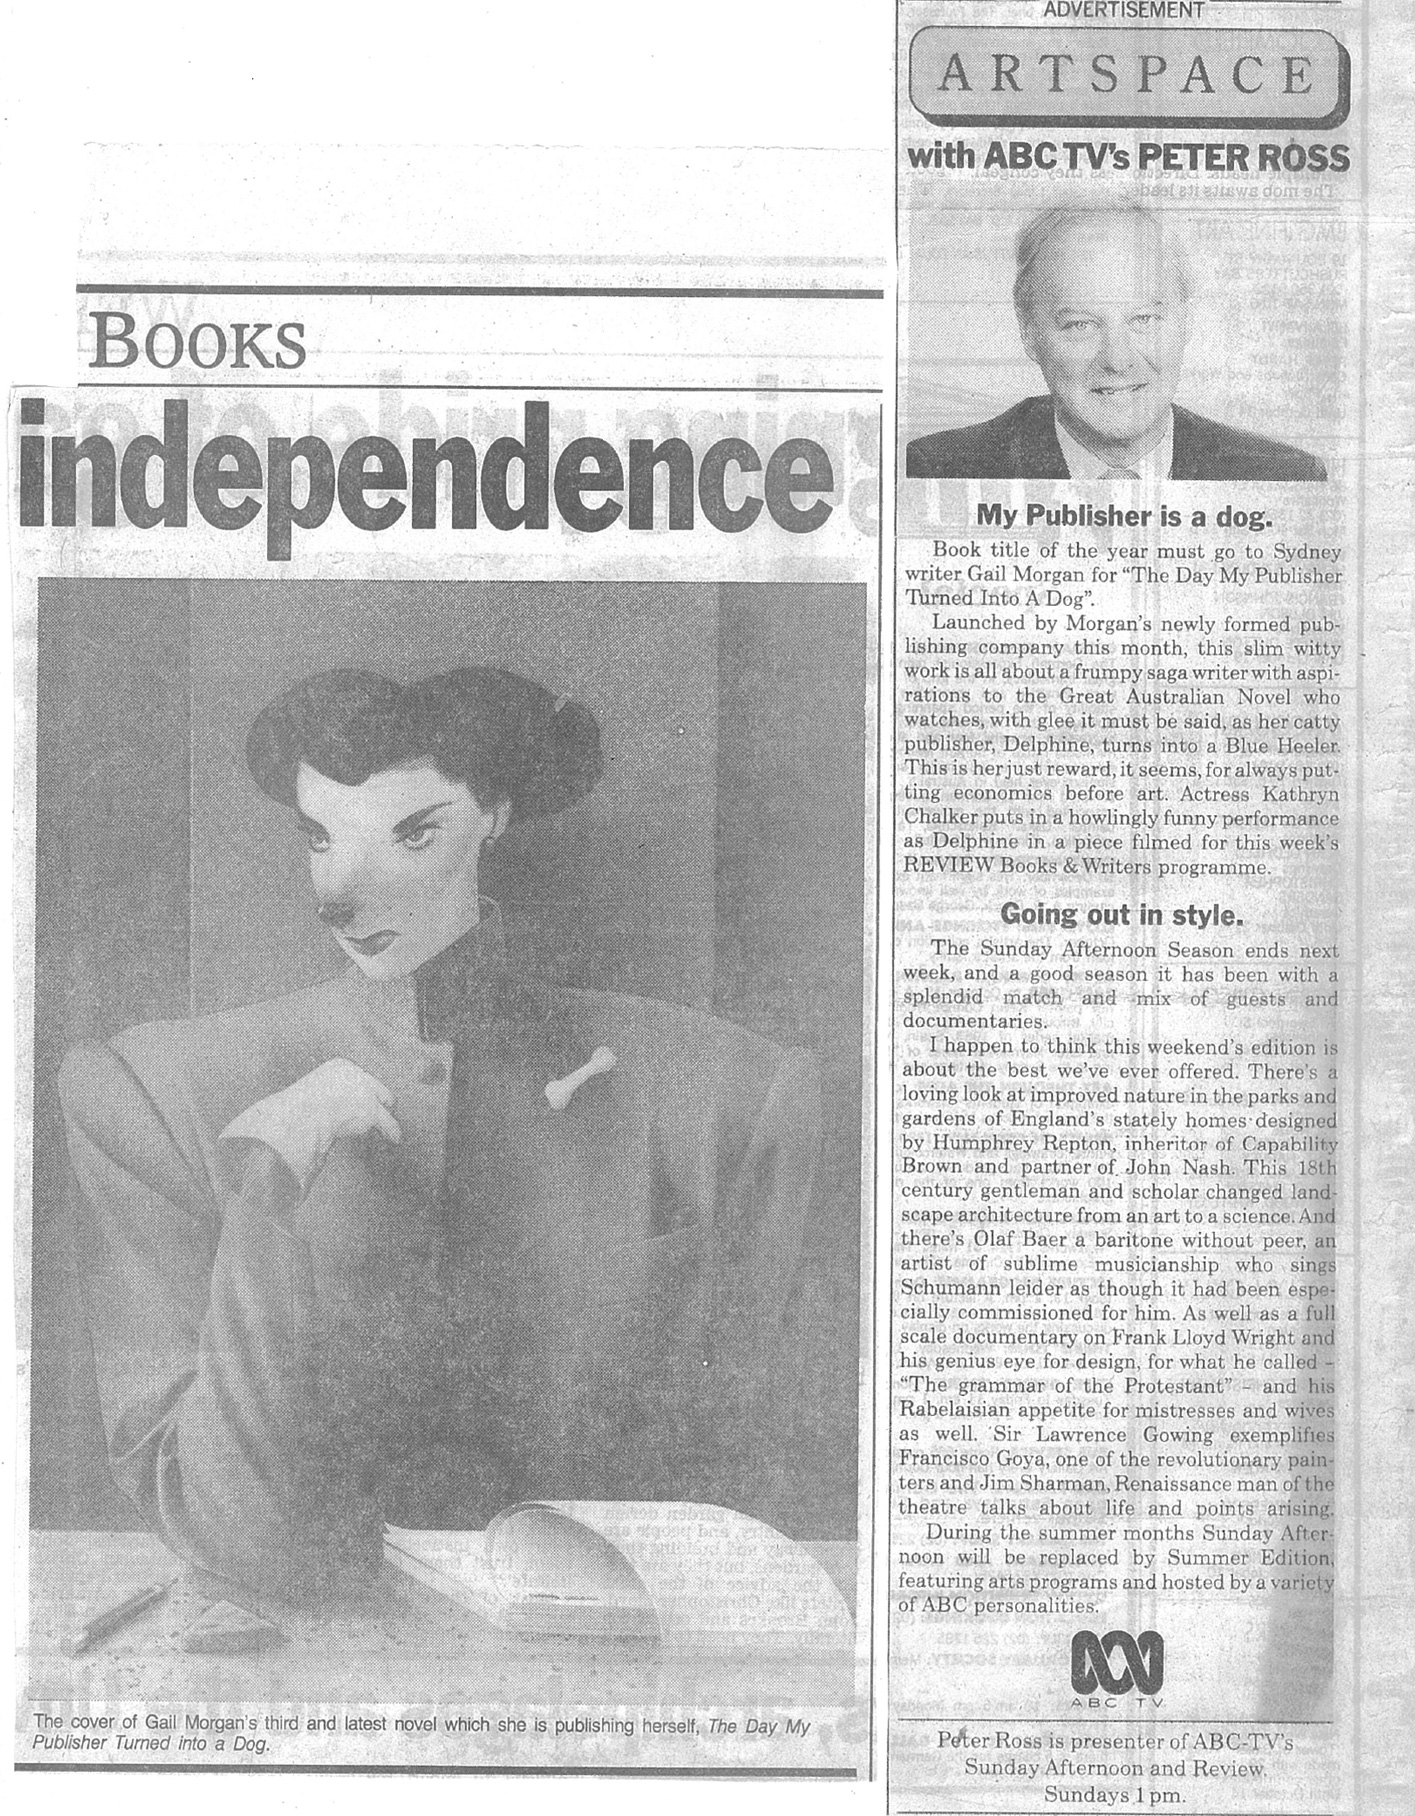 The importance of independance